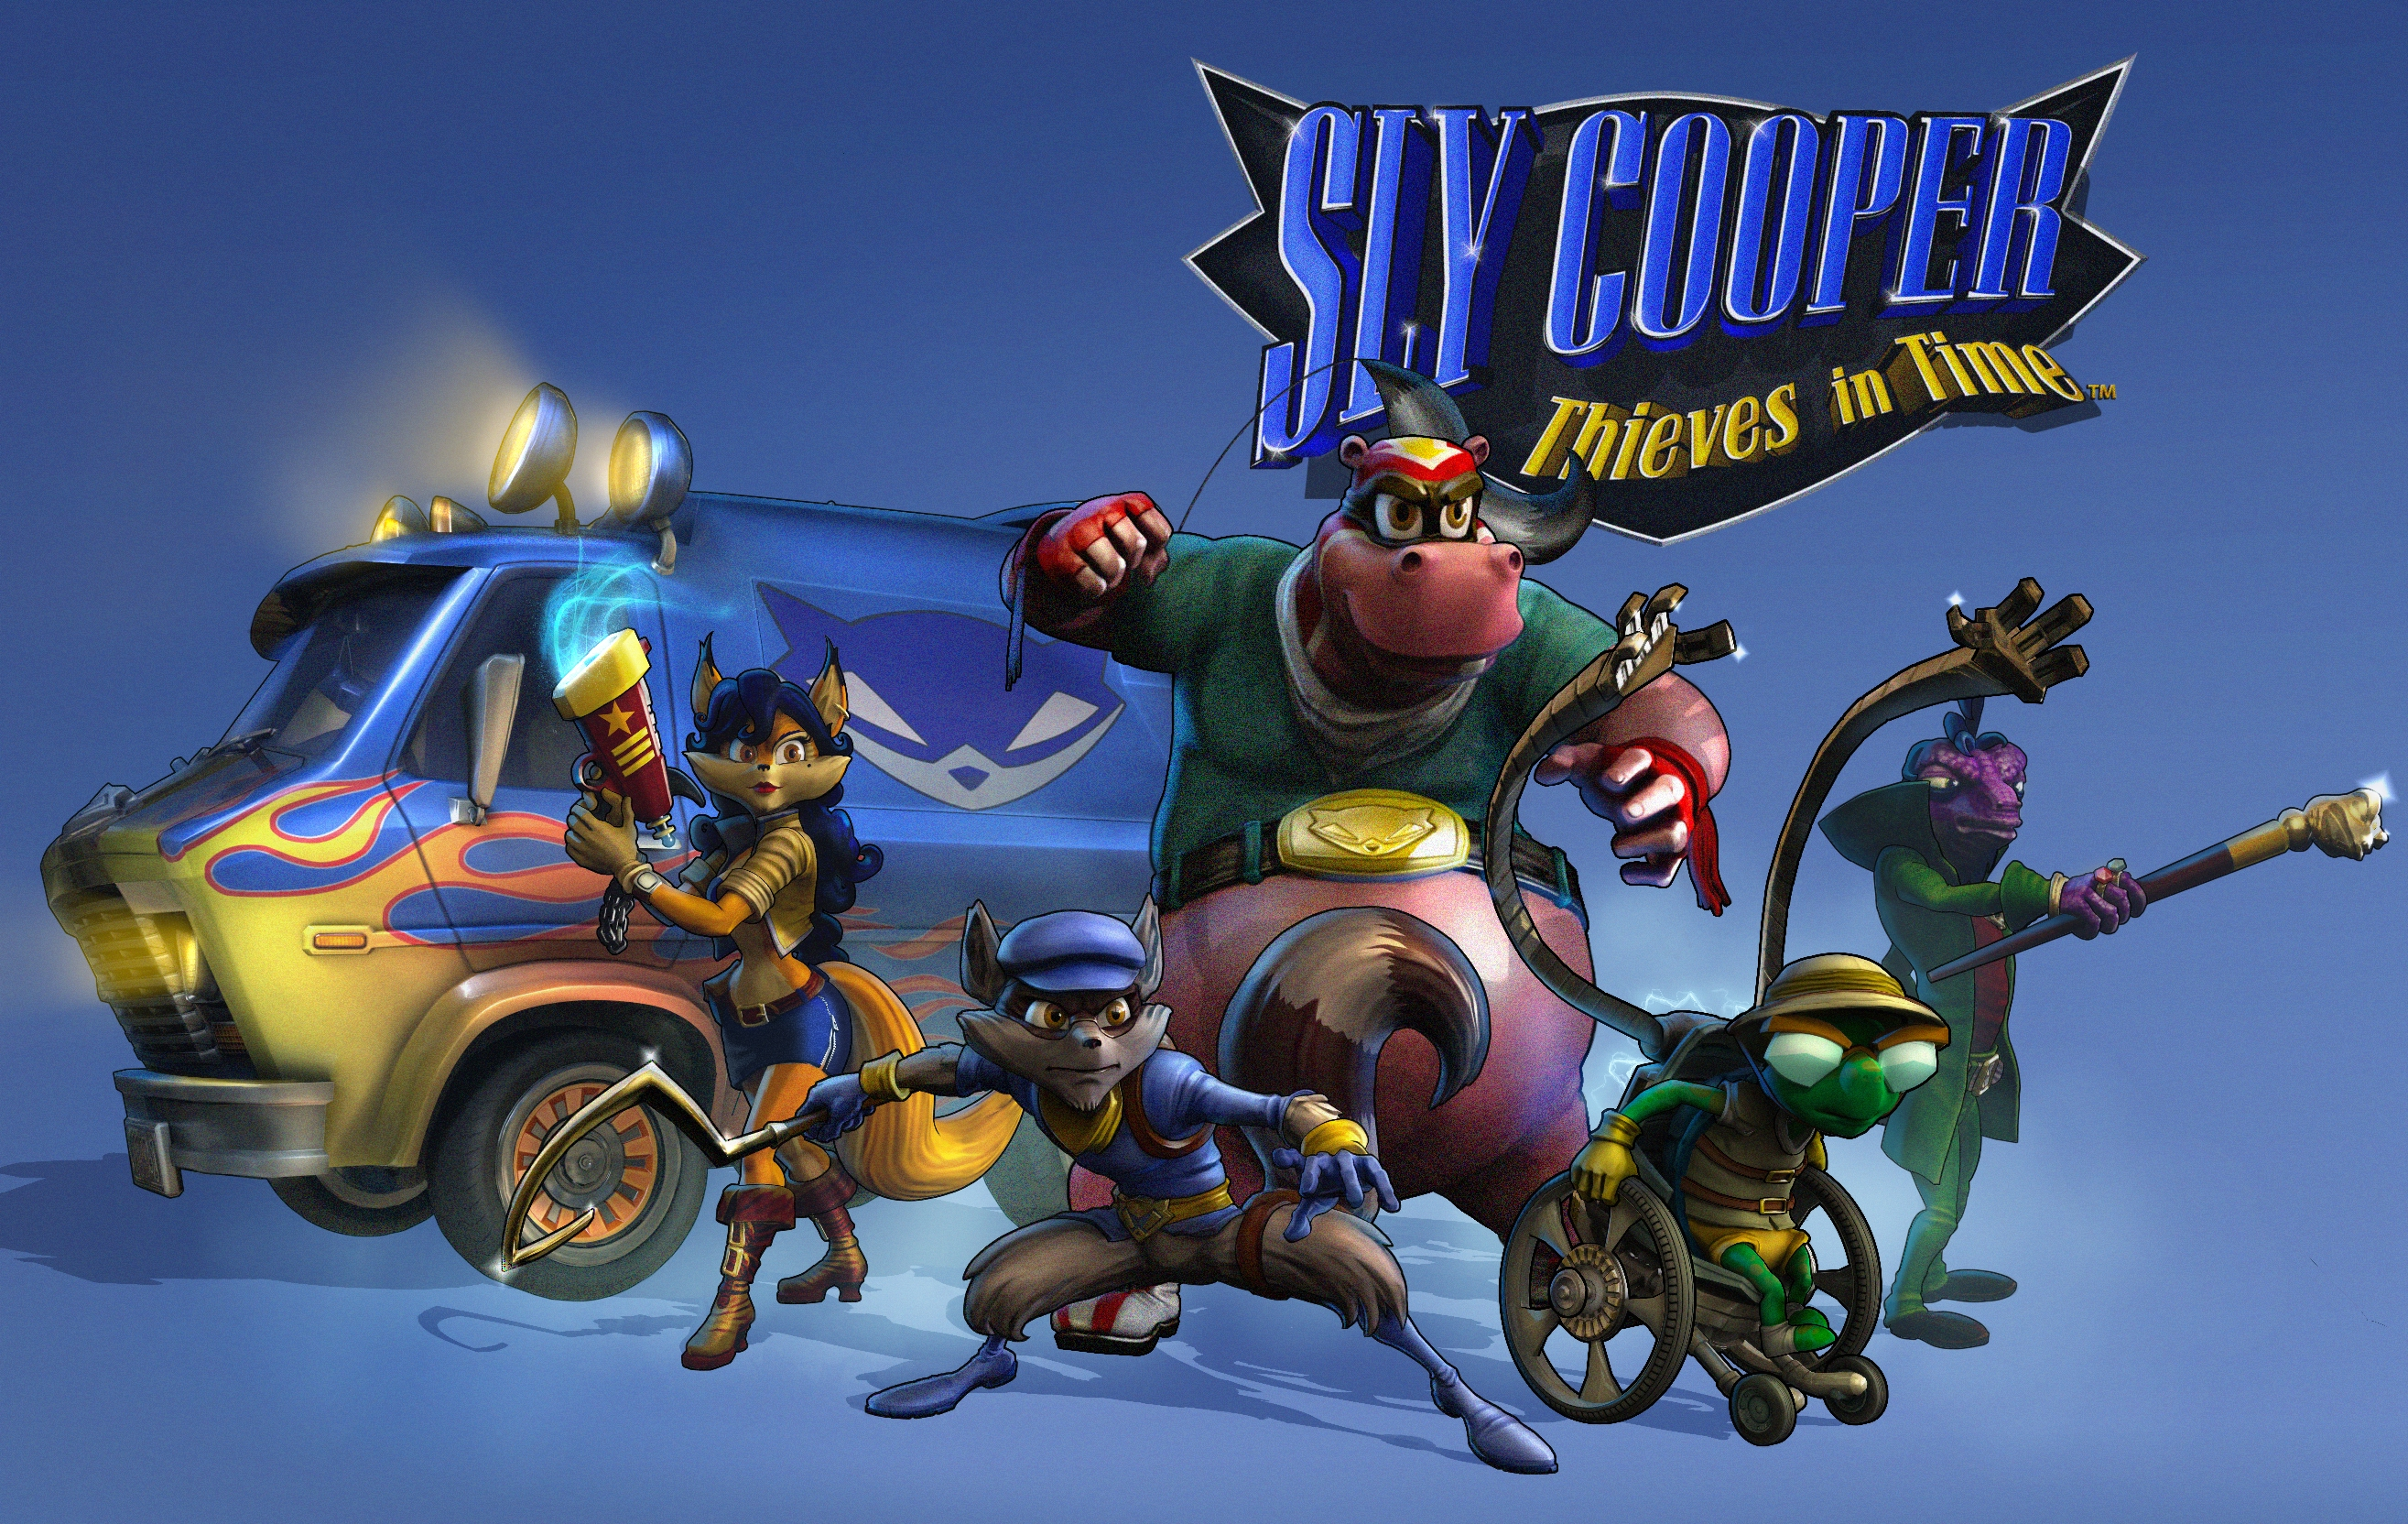 2015 By admin Comments Off on Sly Cooper Thieves in Time Wallpapers 2630x1664